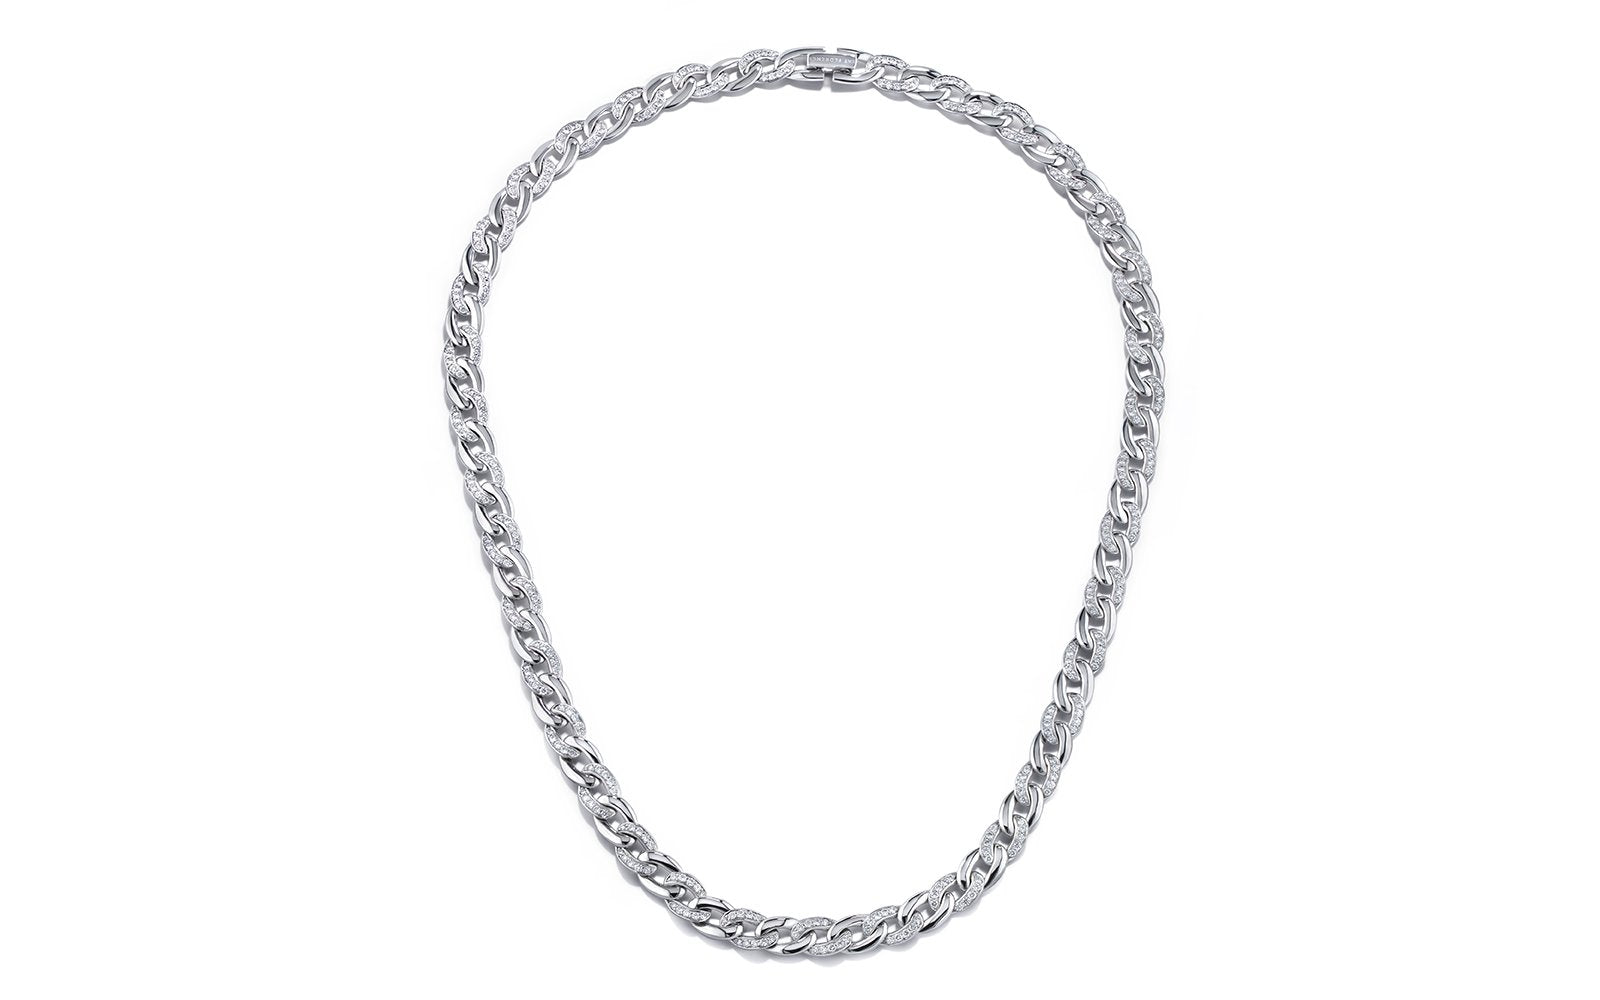 D Flawless Diamond 20 Inch Necklace set in 18K White Gold